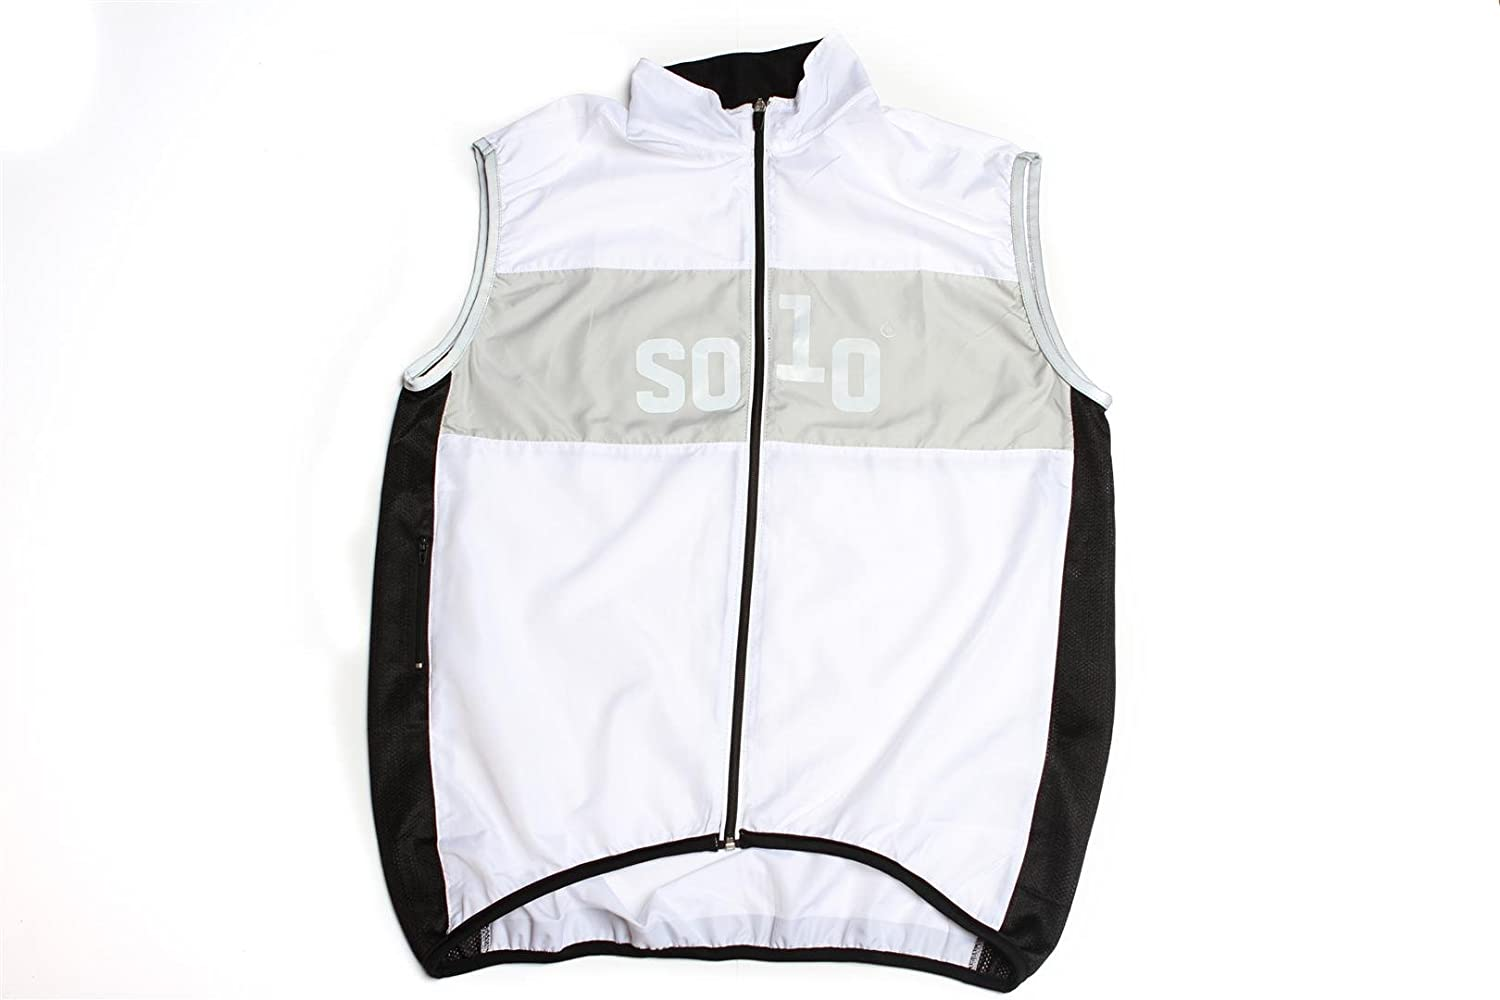 Solo Equipe Cycling Gilet White